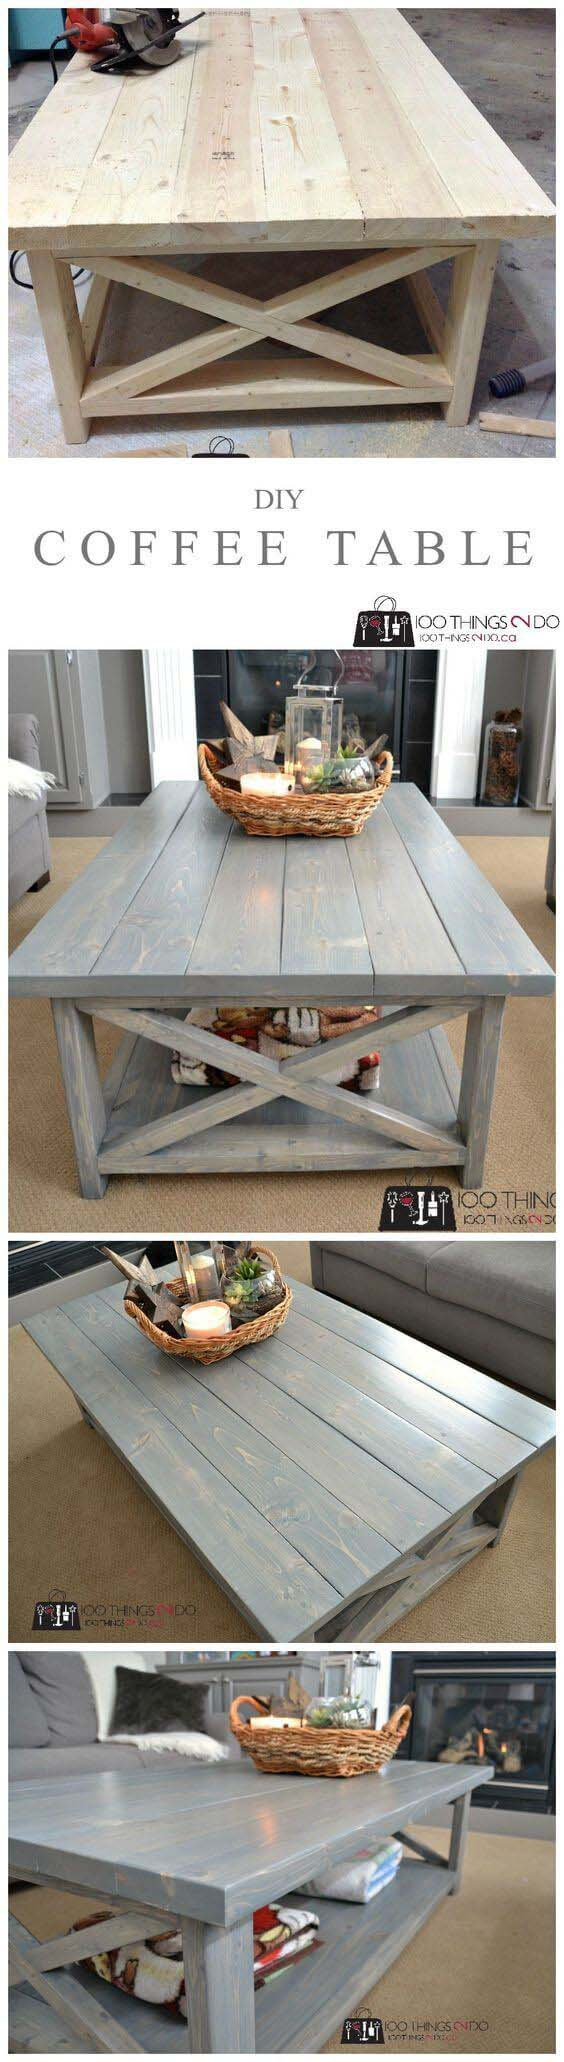 DIY Rustic X Coffee Table #reclaimed #wood #projects #decorhomeideas